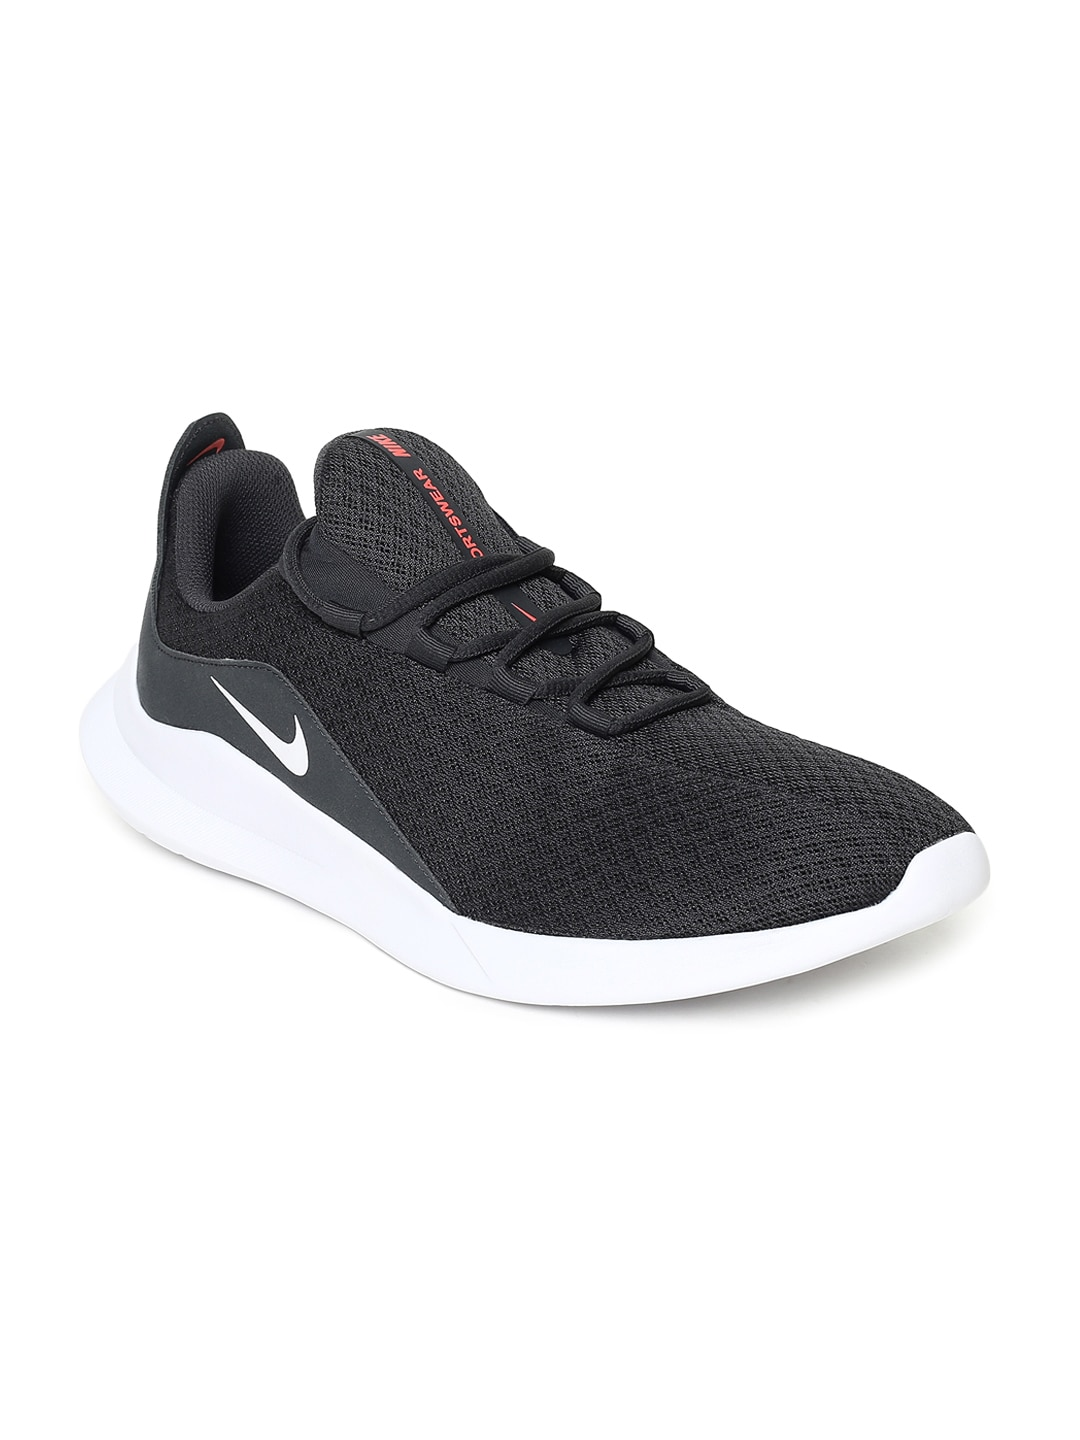 timeless design 7fd13 1b6c8 Nike Shoes - Buy Nike Shoes for Men, Women   Kids Online   Myntra